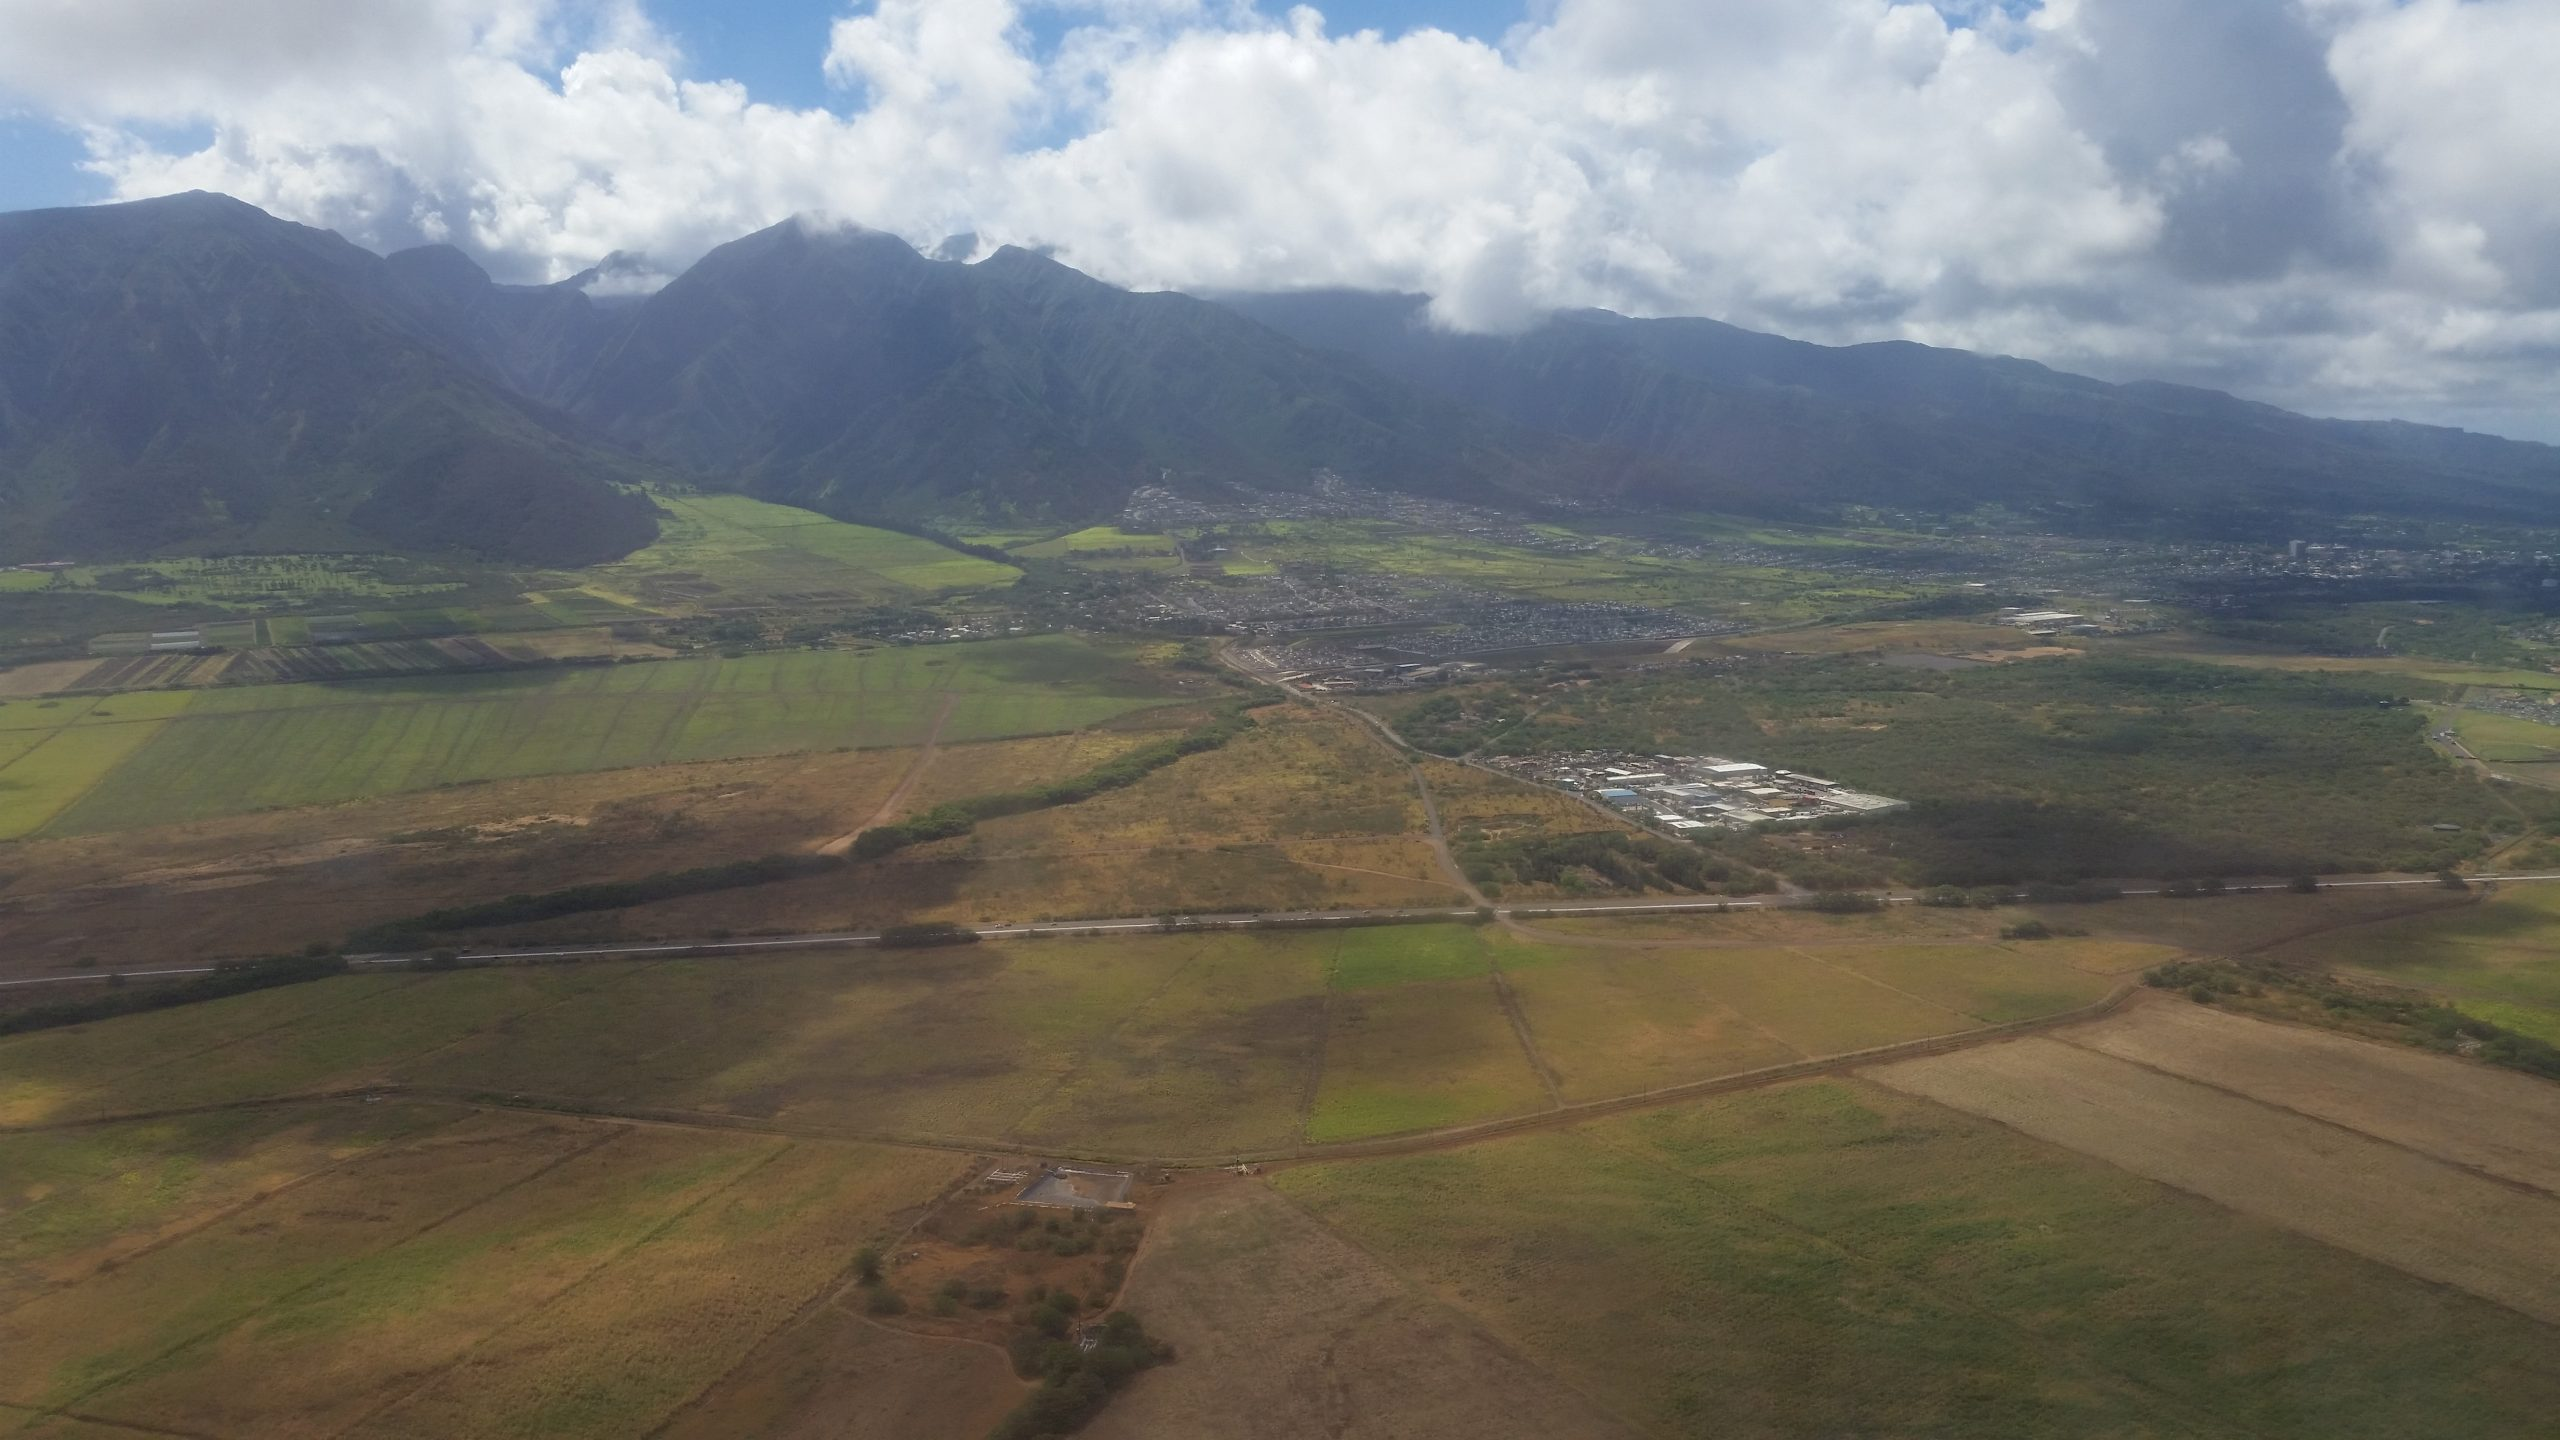 Gov. Ige Declares Maui County a Disaster Area Due to Drought Since March 2019